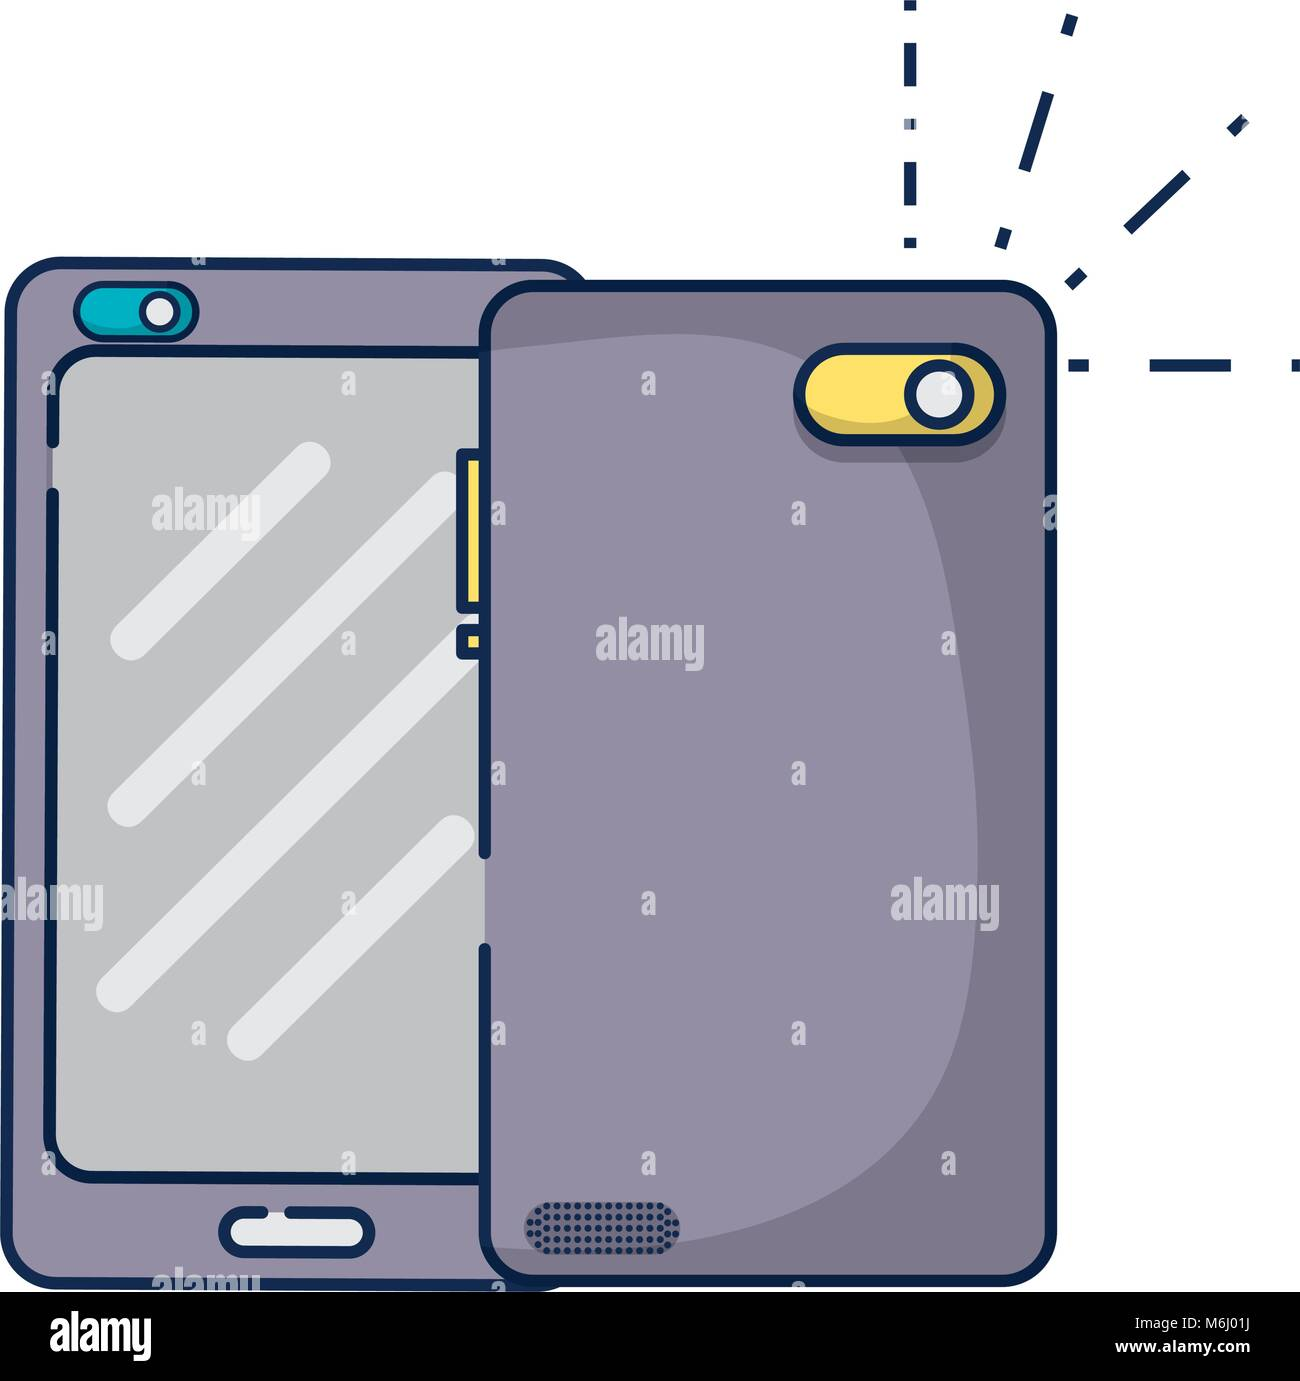 smartphone technology in front and rear style - Stock Vector